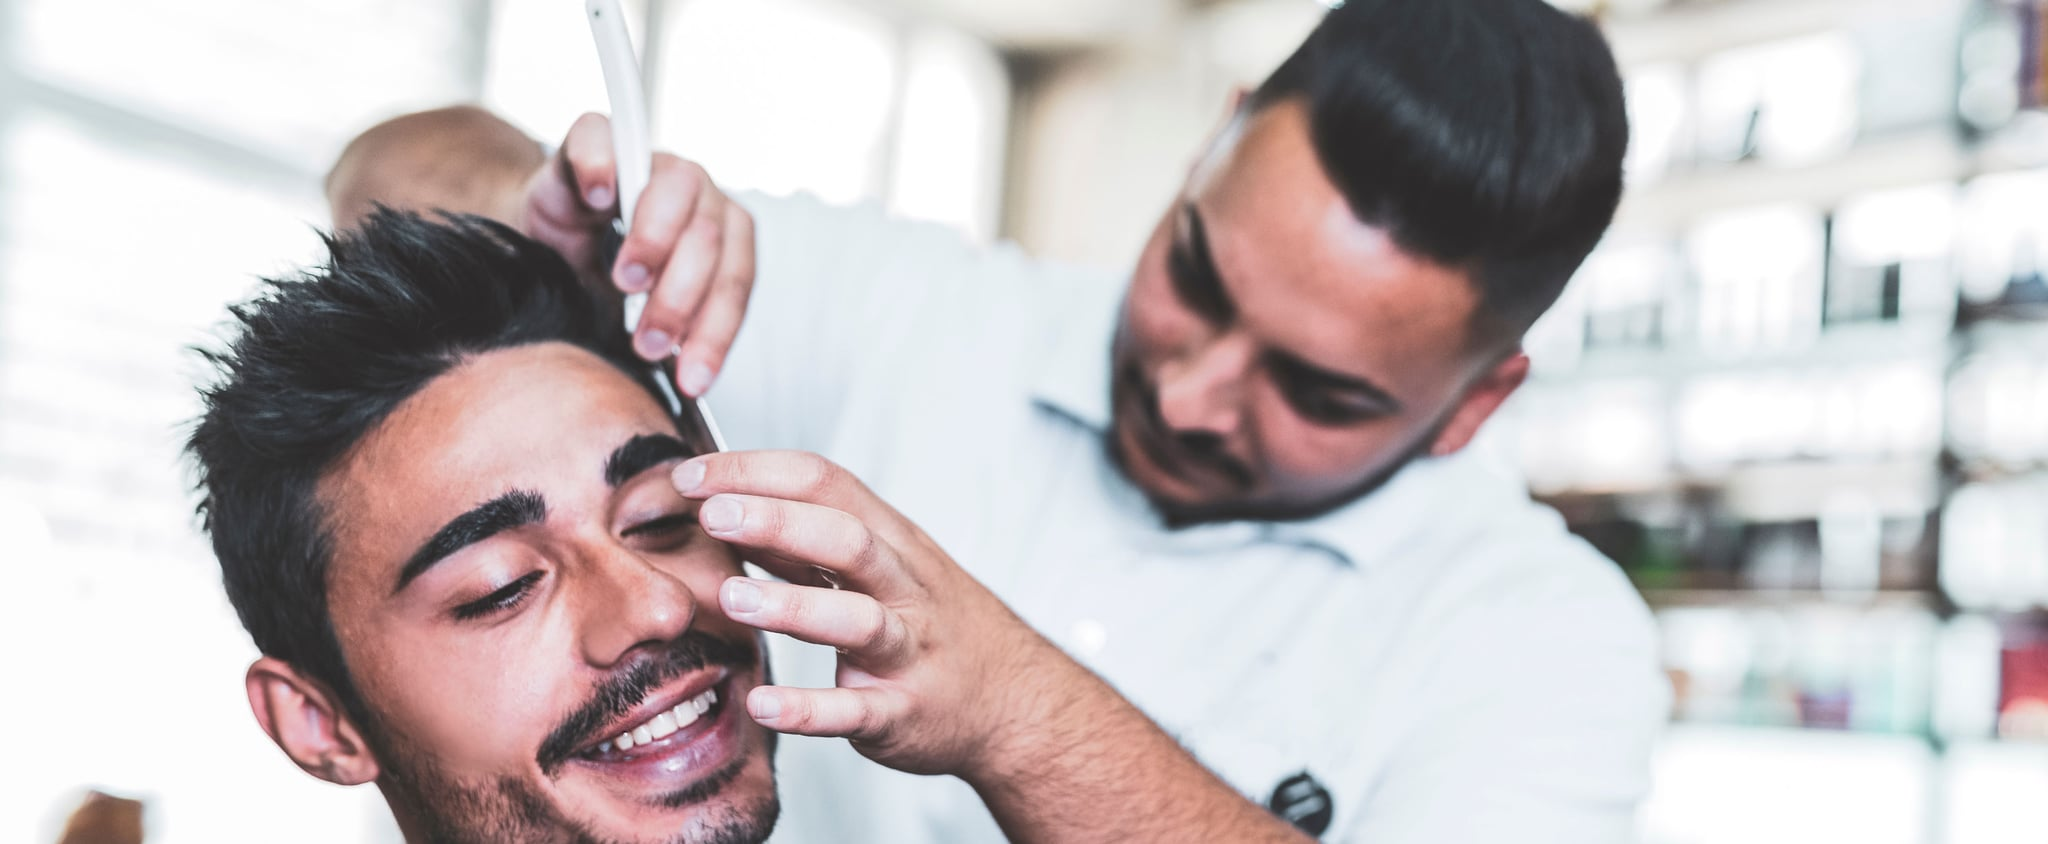 Should Men Shave Their Beards Because of COVID-19?